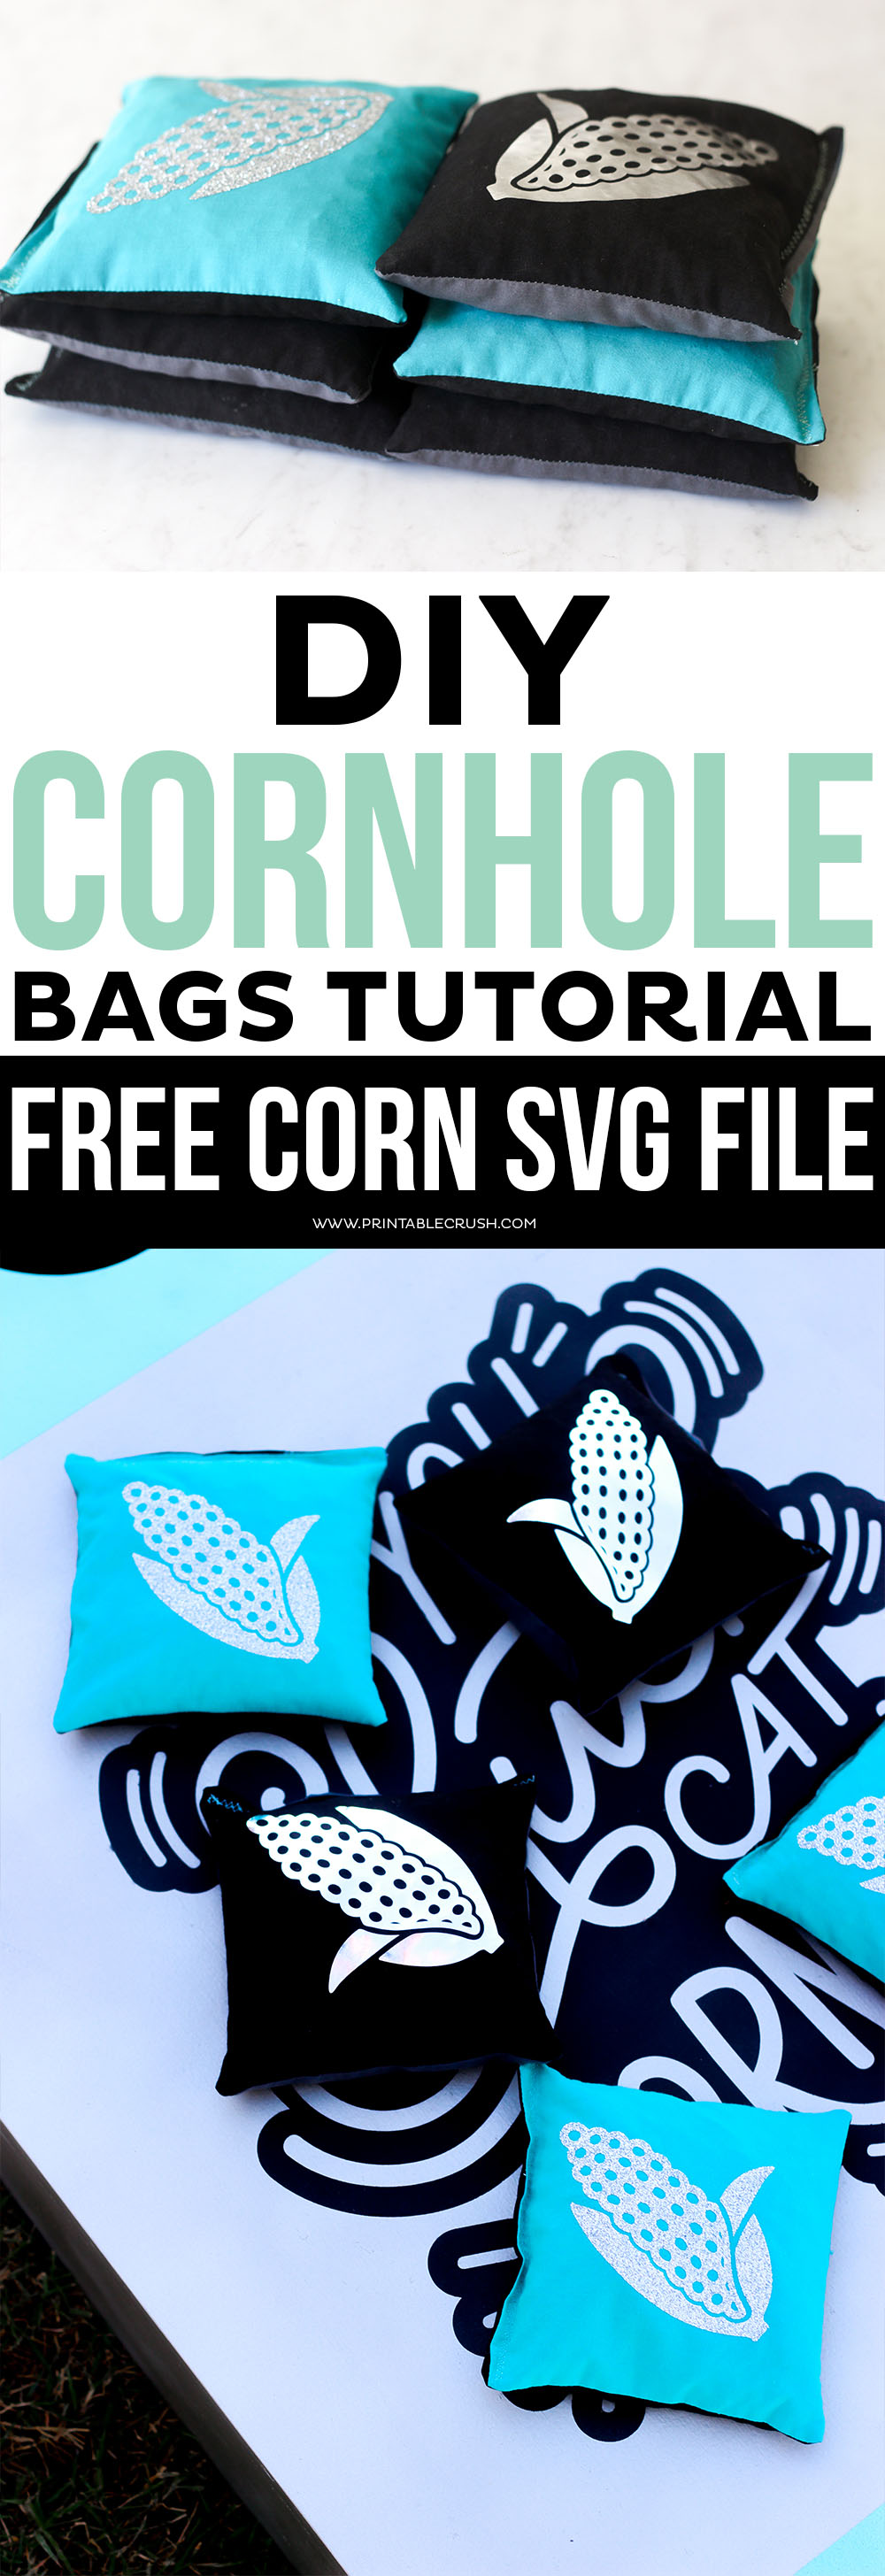 DIY Cornhole Bags Tutorial long collage